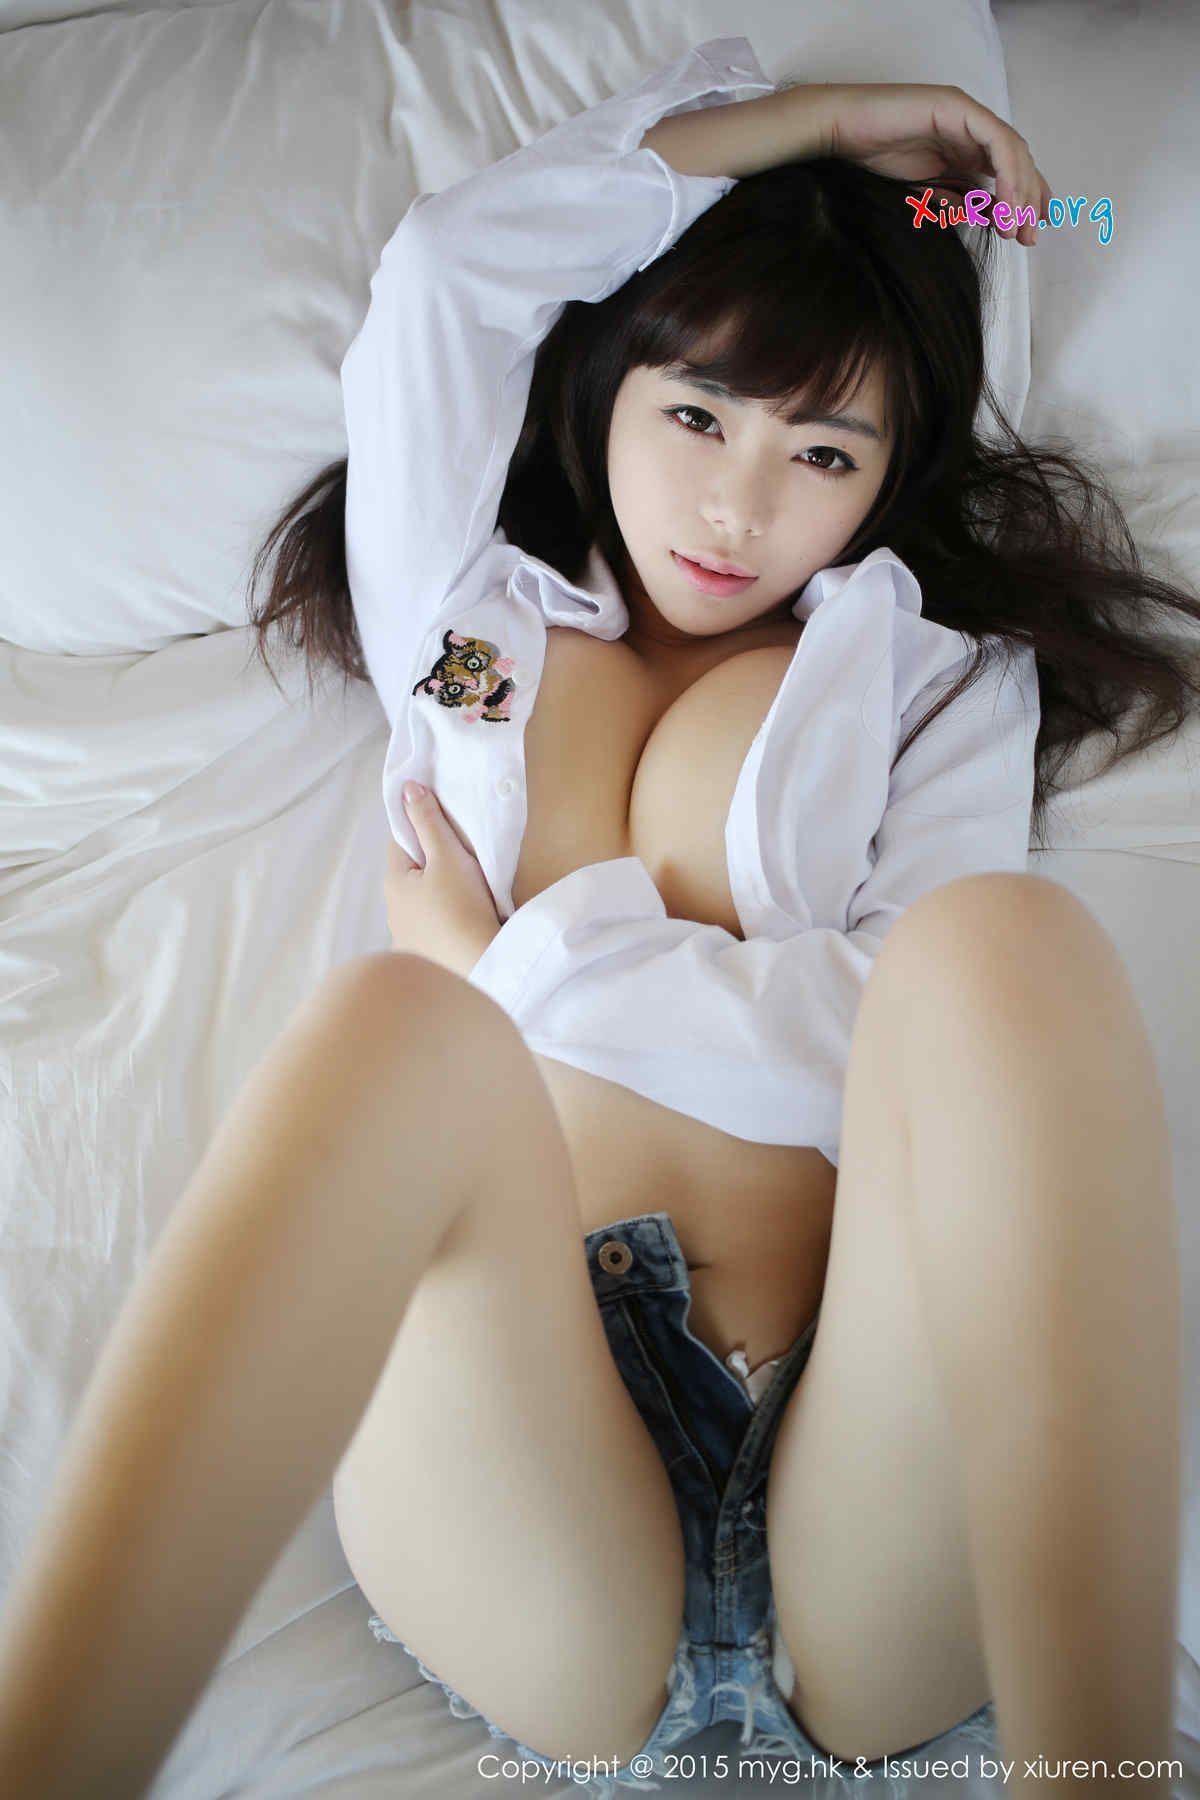 http://www.asian-sirens.net/uploads/2015/06/11.jpg